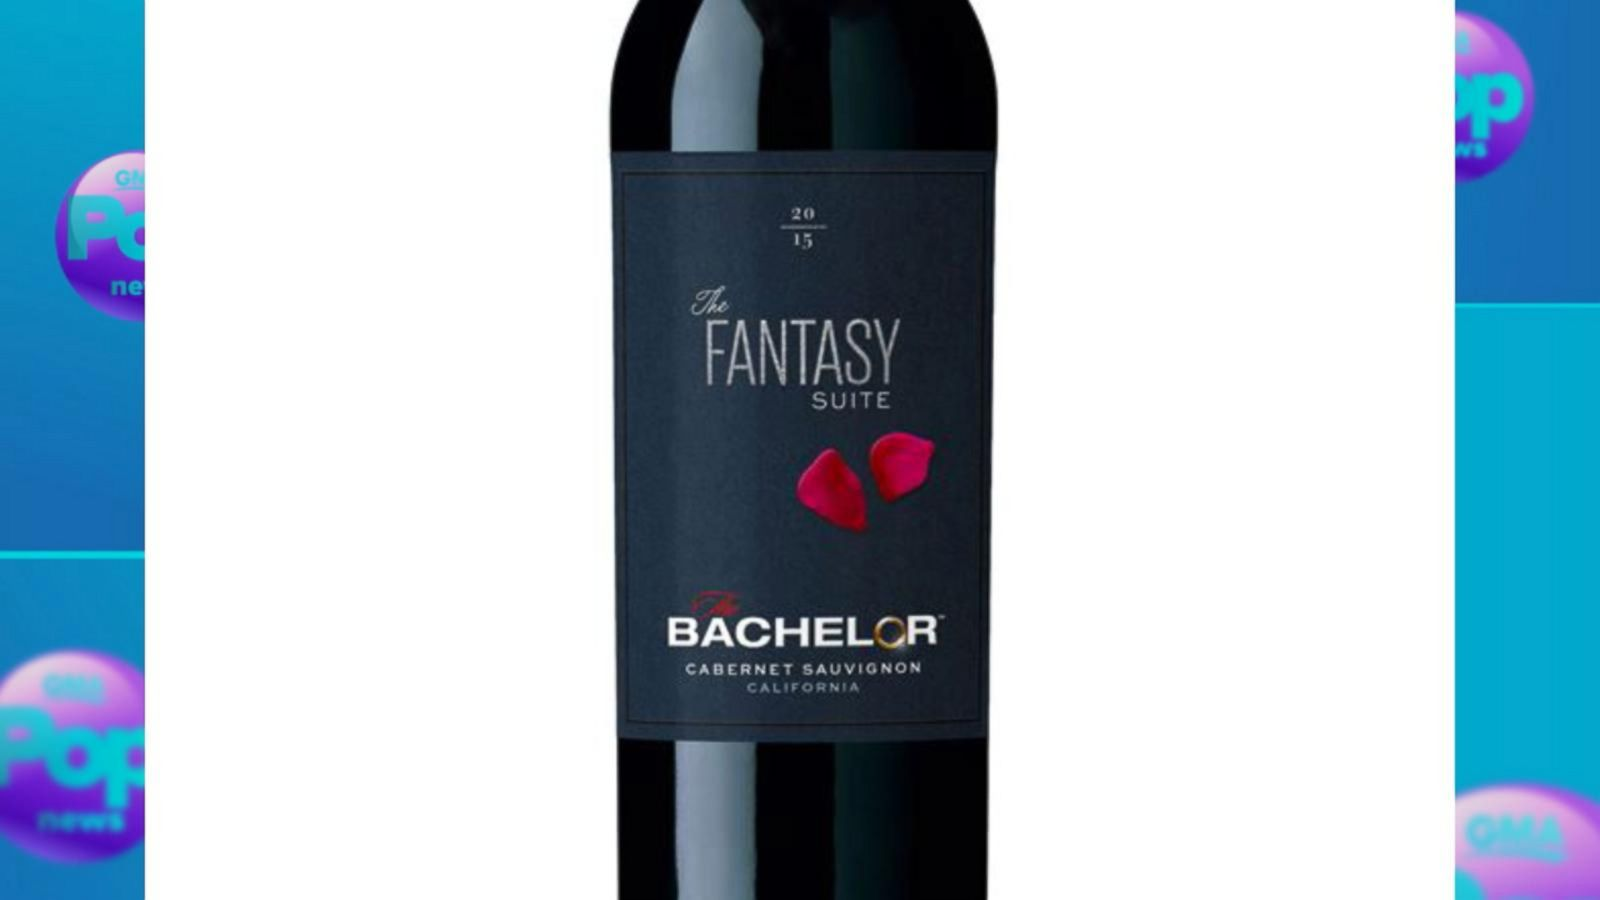 VIDEO: 'The Bachelor' Inspired Wines Released in Time for Season 21